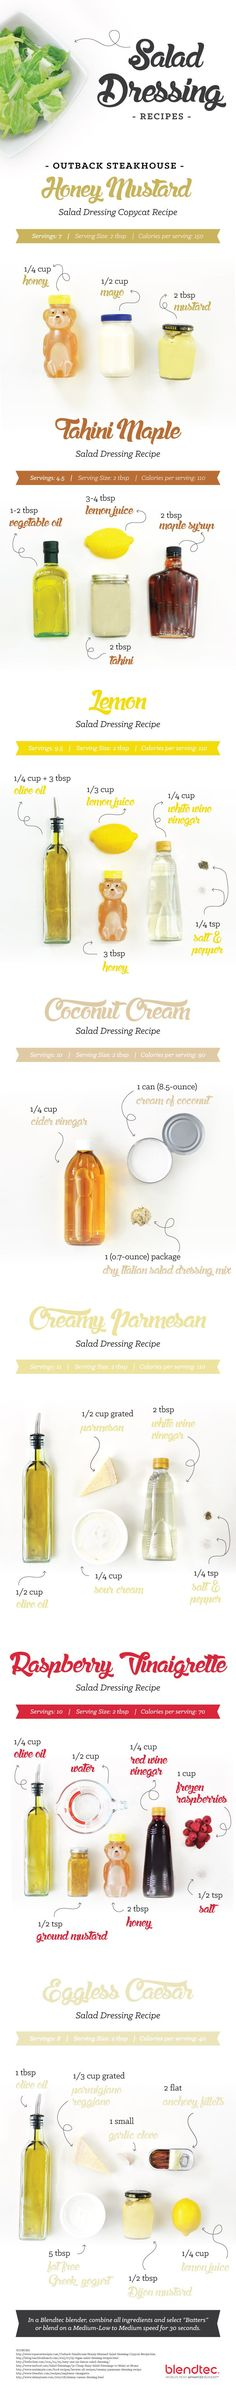 DIY salad dressing recipes. The Outback Steakhouse recipe is incredible!